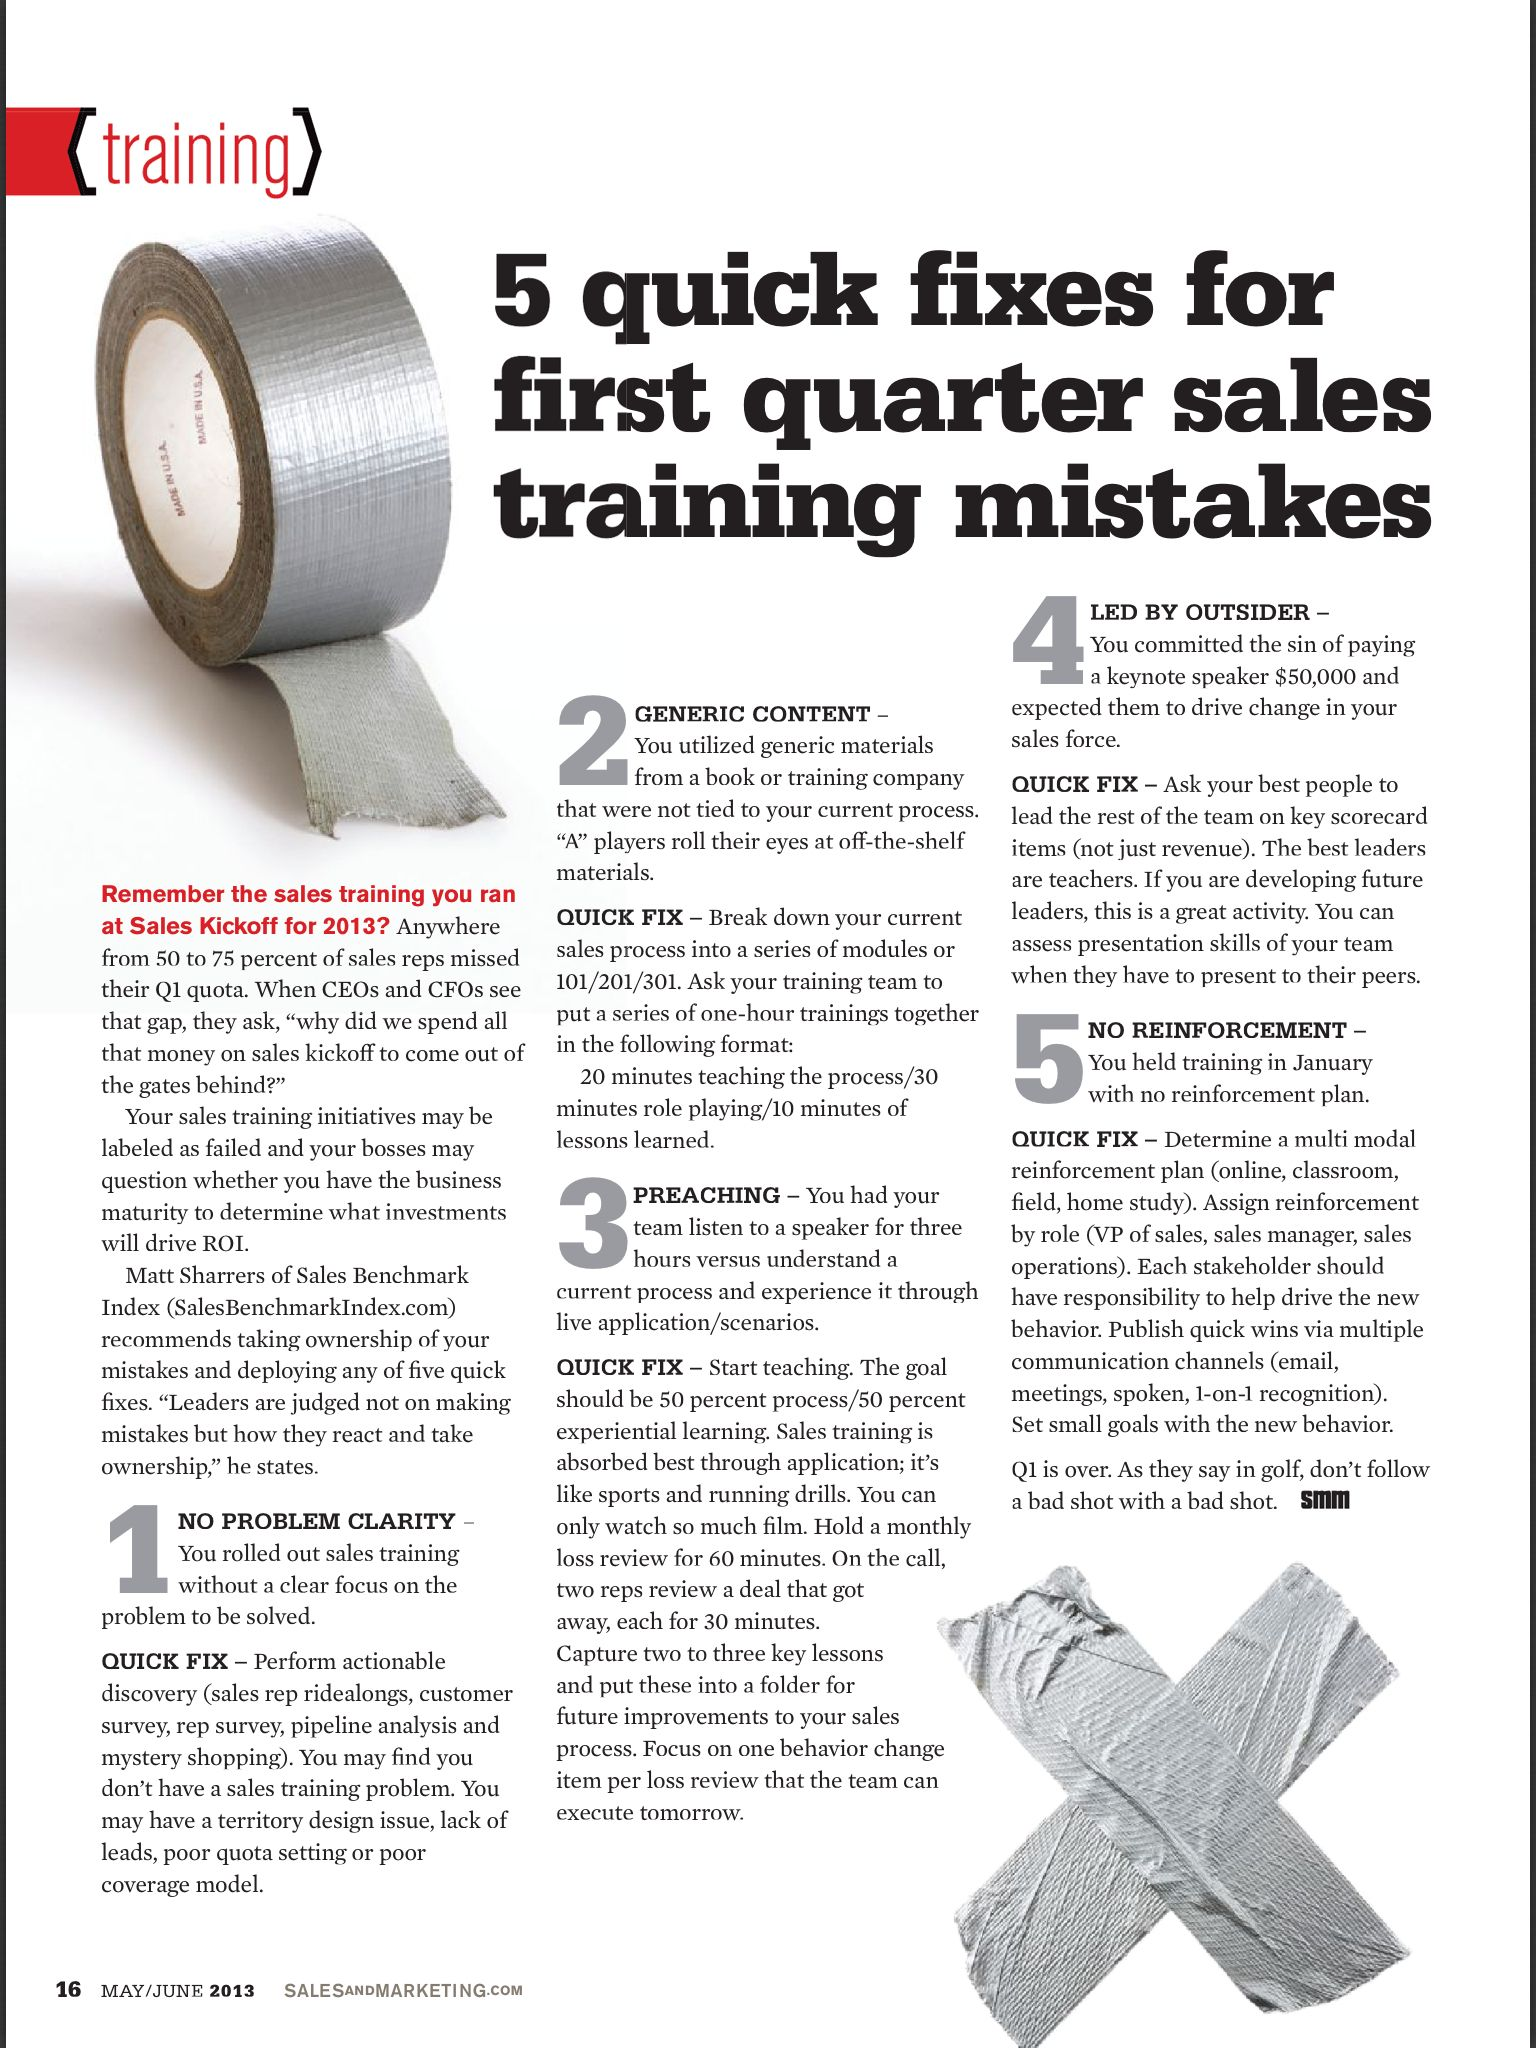 5 quick fixes for sales training mistakes #sales #training | sales